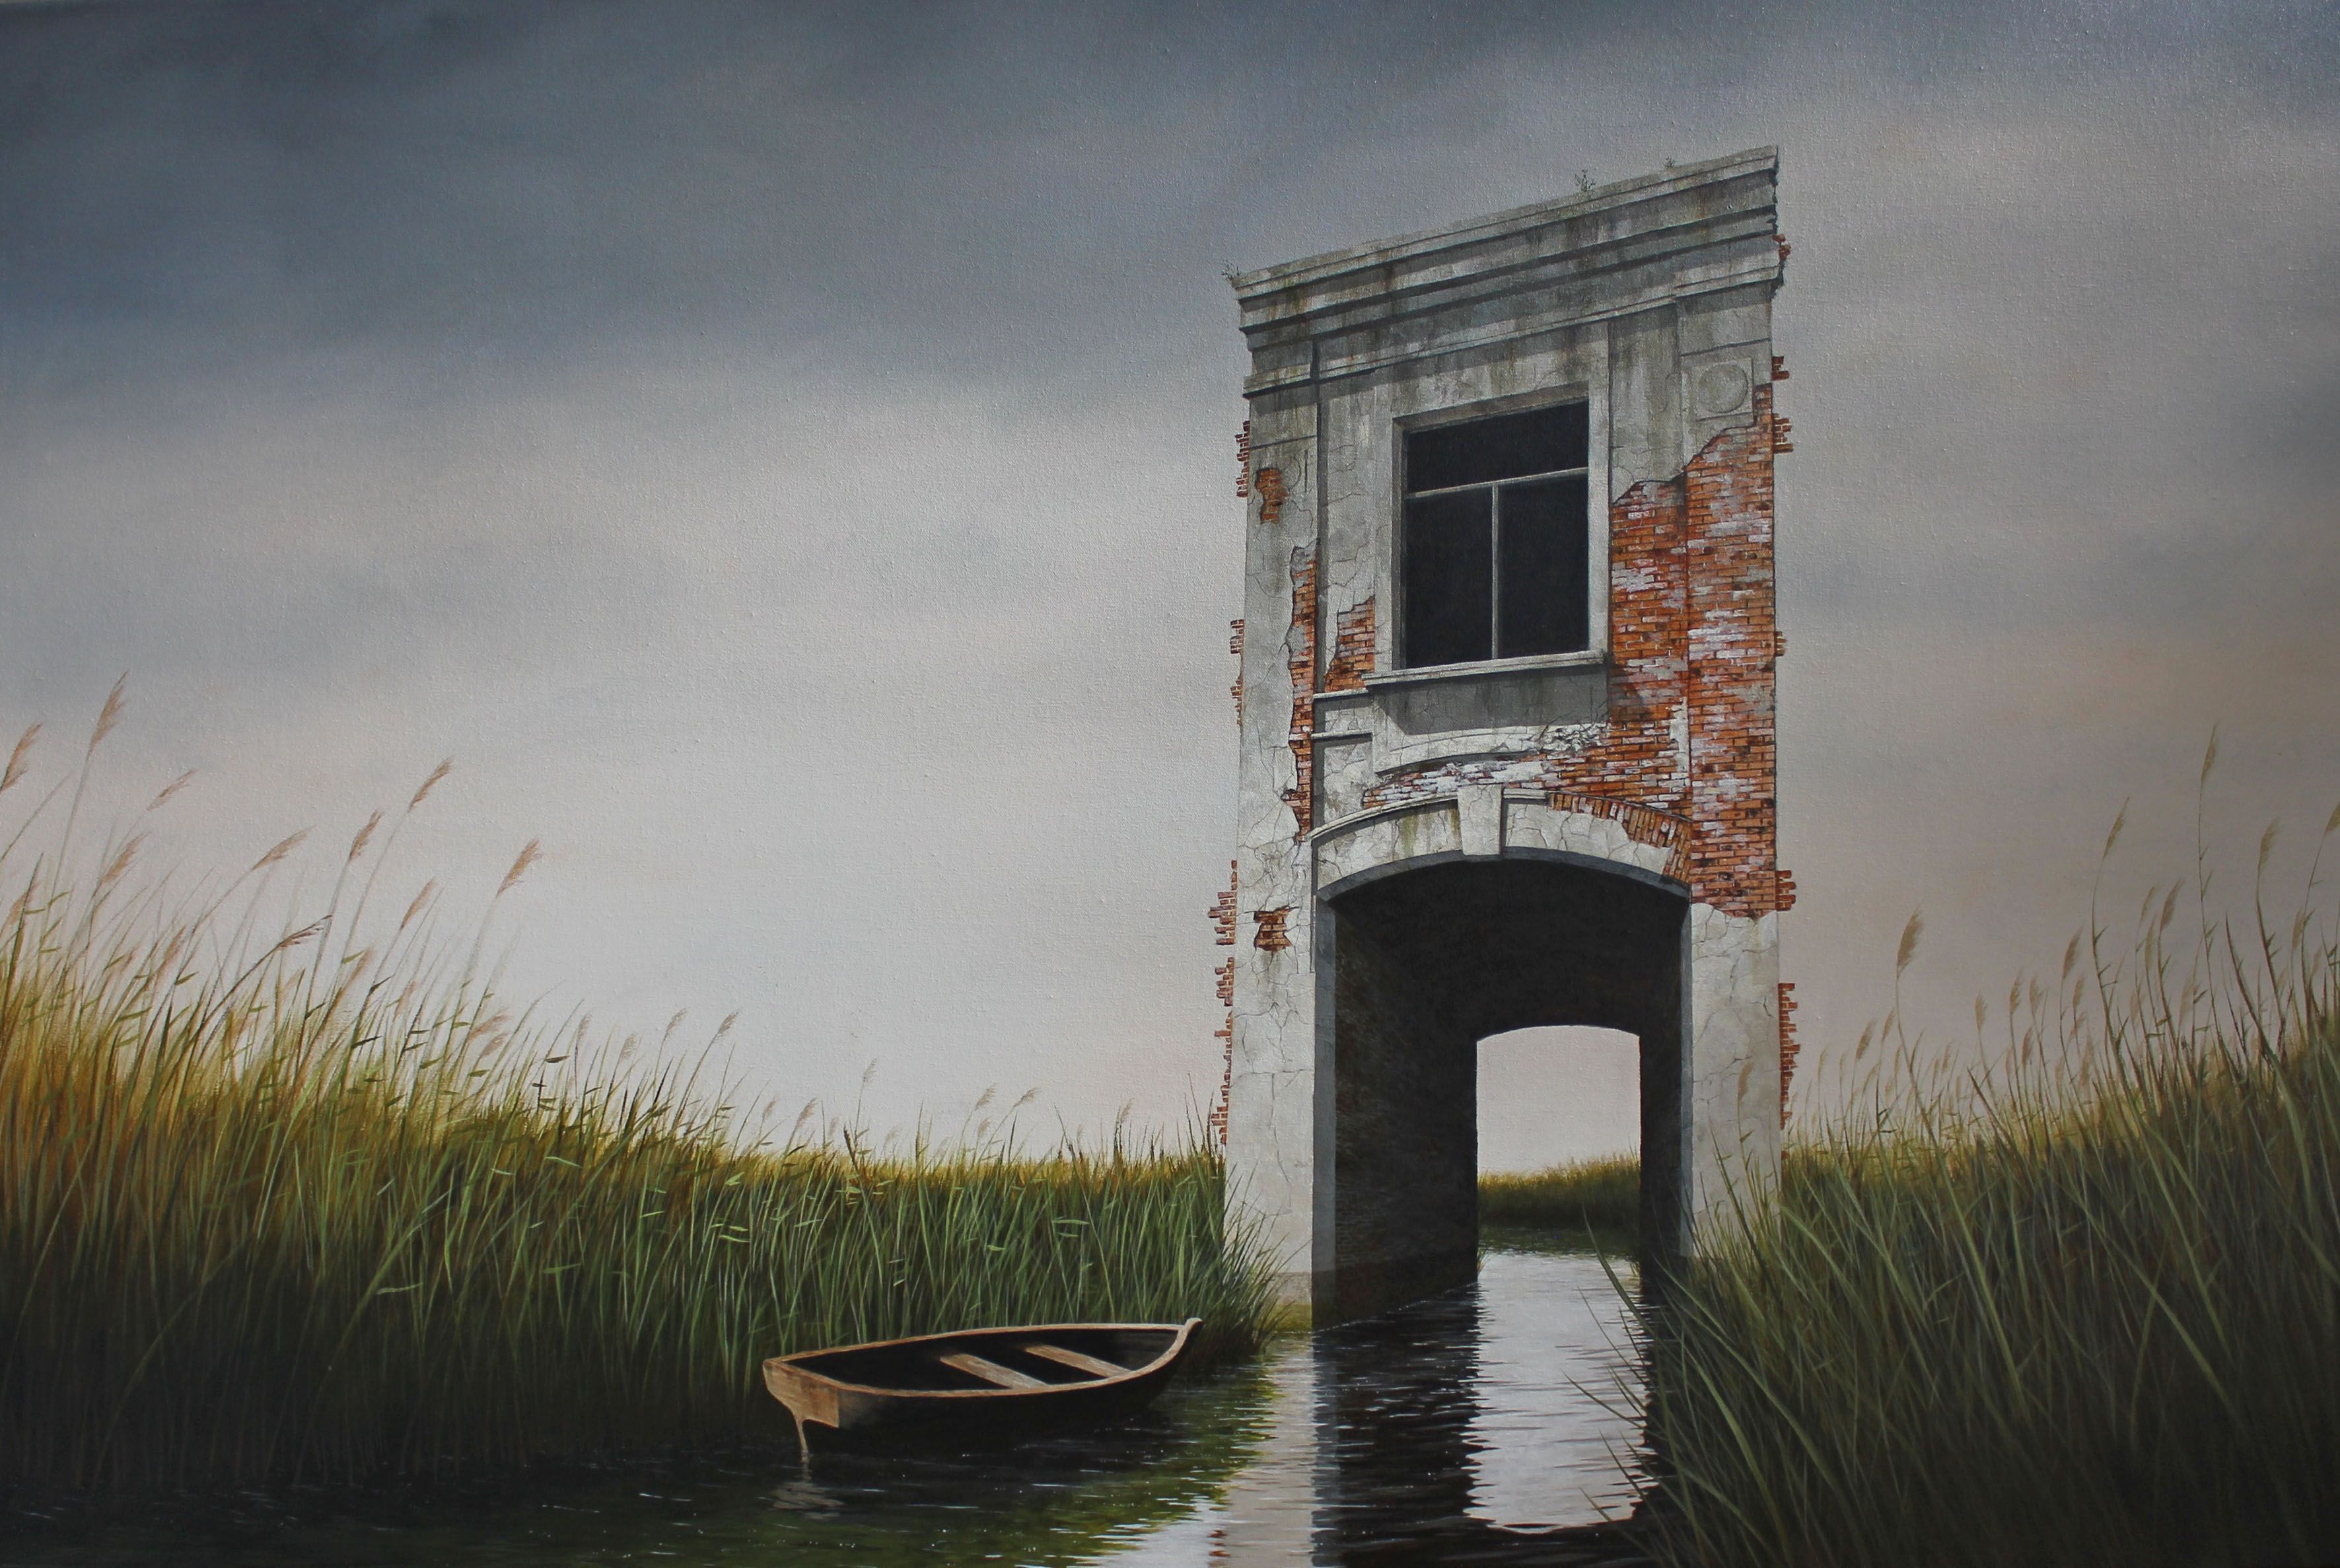 Lee Madgwick - Fragments - oil_acrylic on canvas 120 x 80cm - 2017